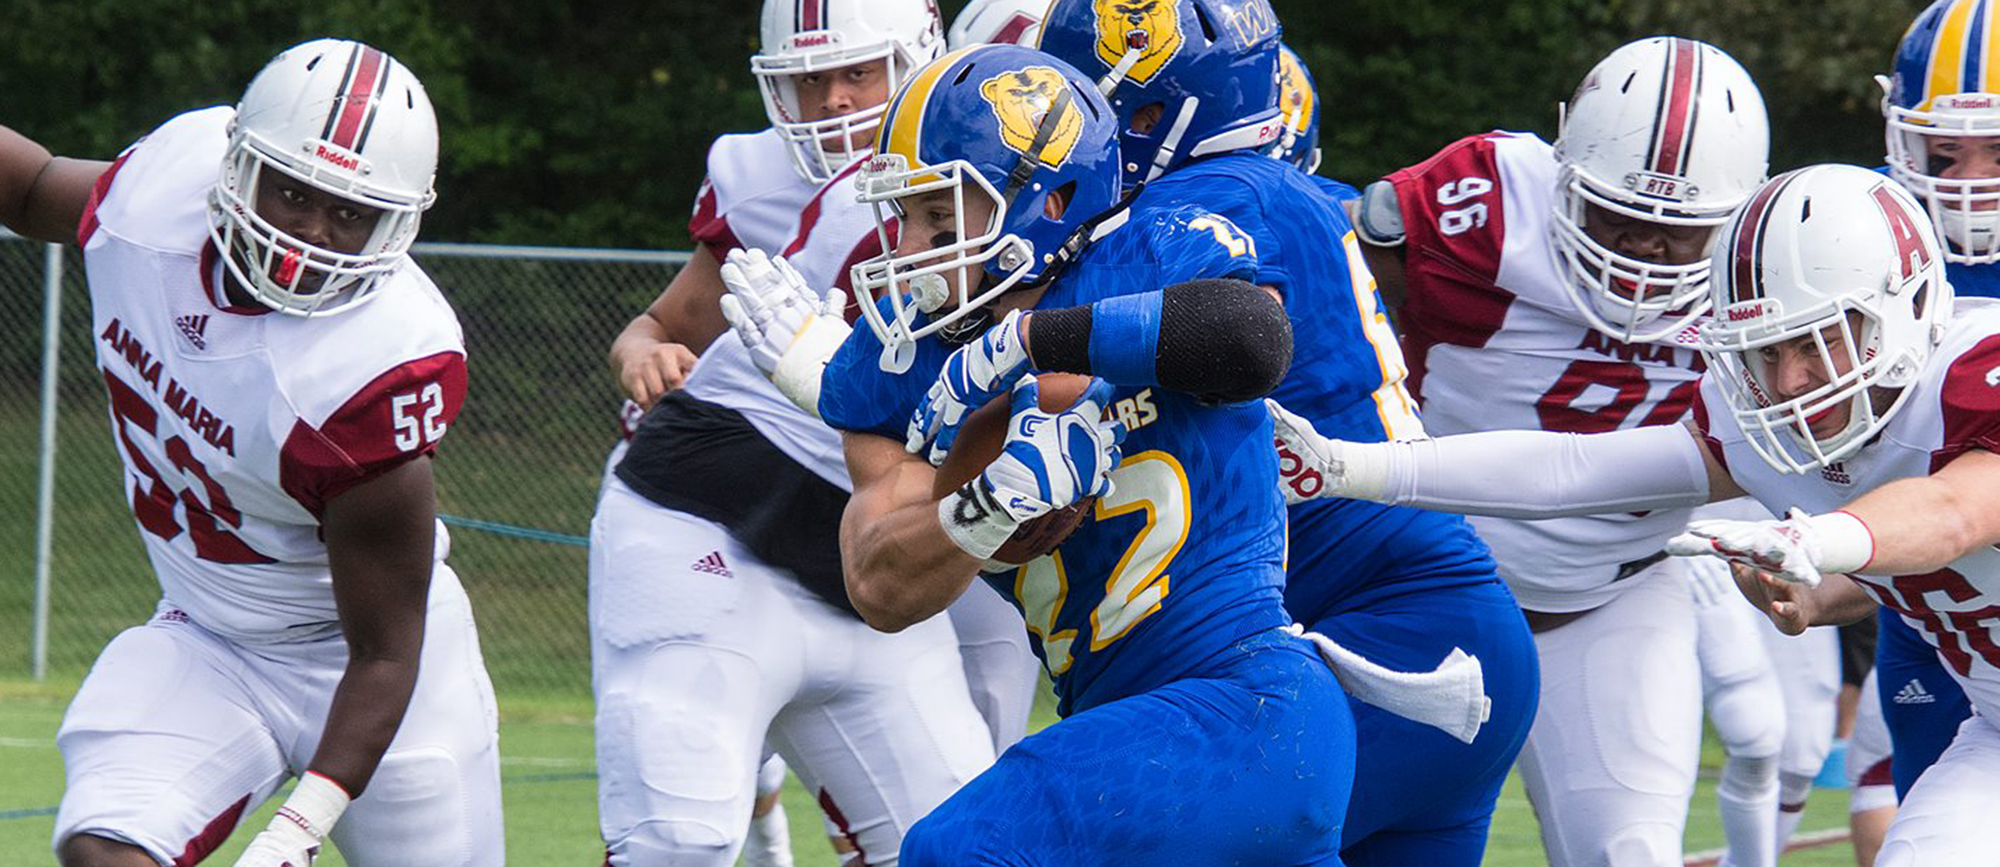 Junior running back Pete Hoff topped the 200-yard mark in Western New England's 41-14 triumph at Salve Regina on Saturday. (Photo by Thomas Henry)